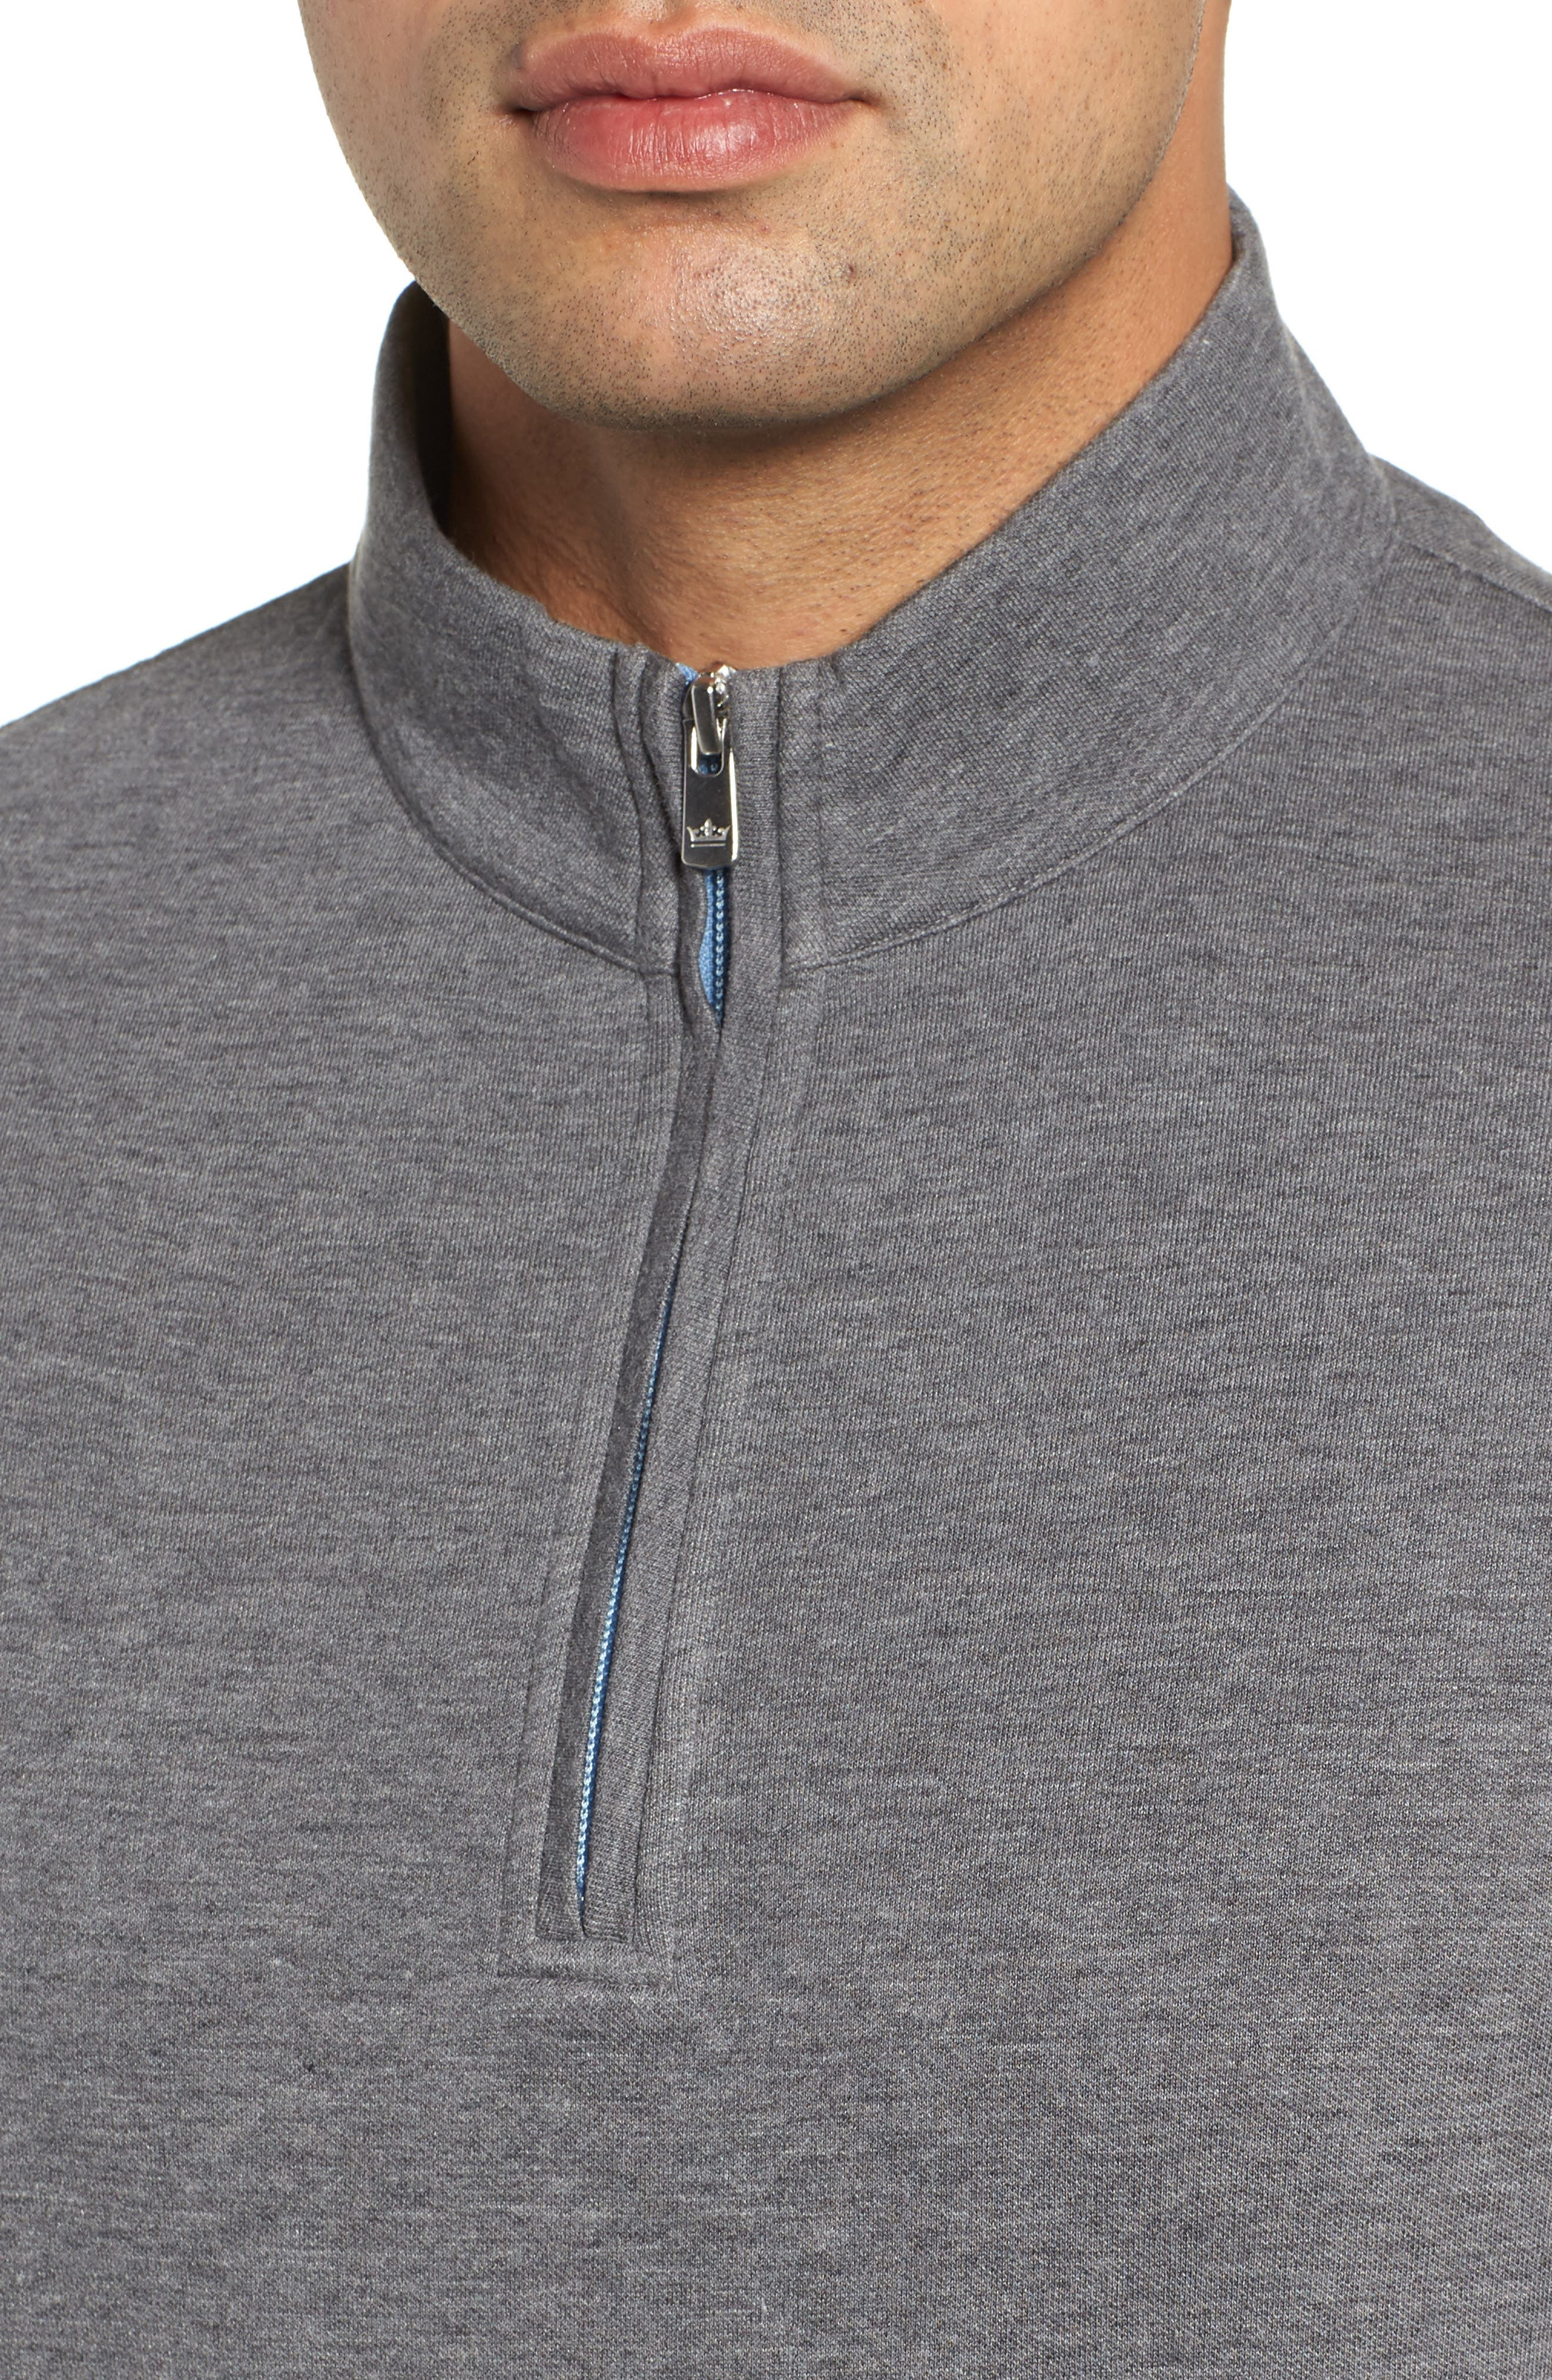 Crown Comfort Jersey Quarter Zip Pullover,                             Alternate thumbnail 4, color,                             CHARCOAL